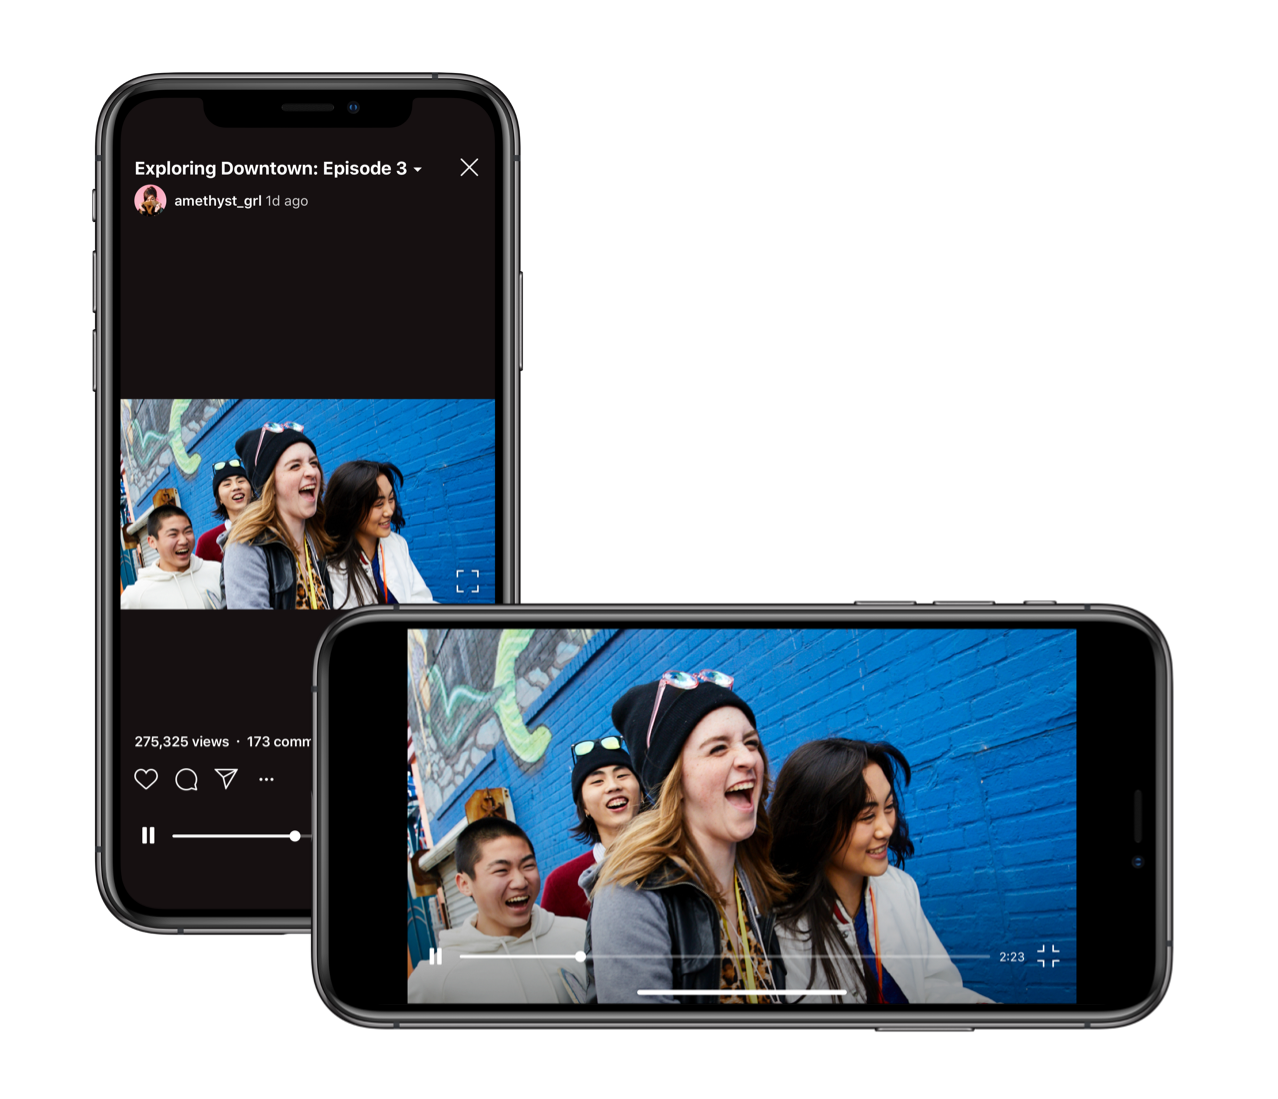 Instagram now supports horizontal IGTV videos